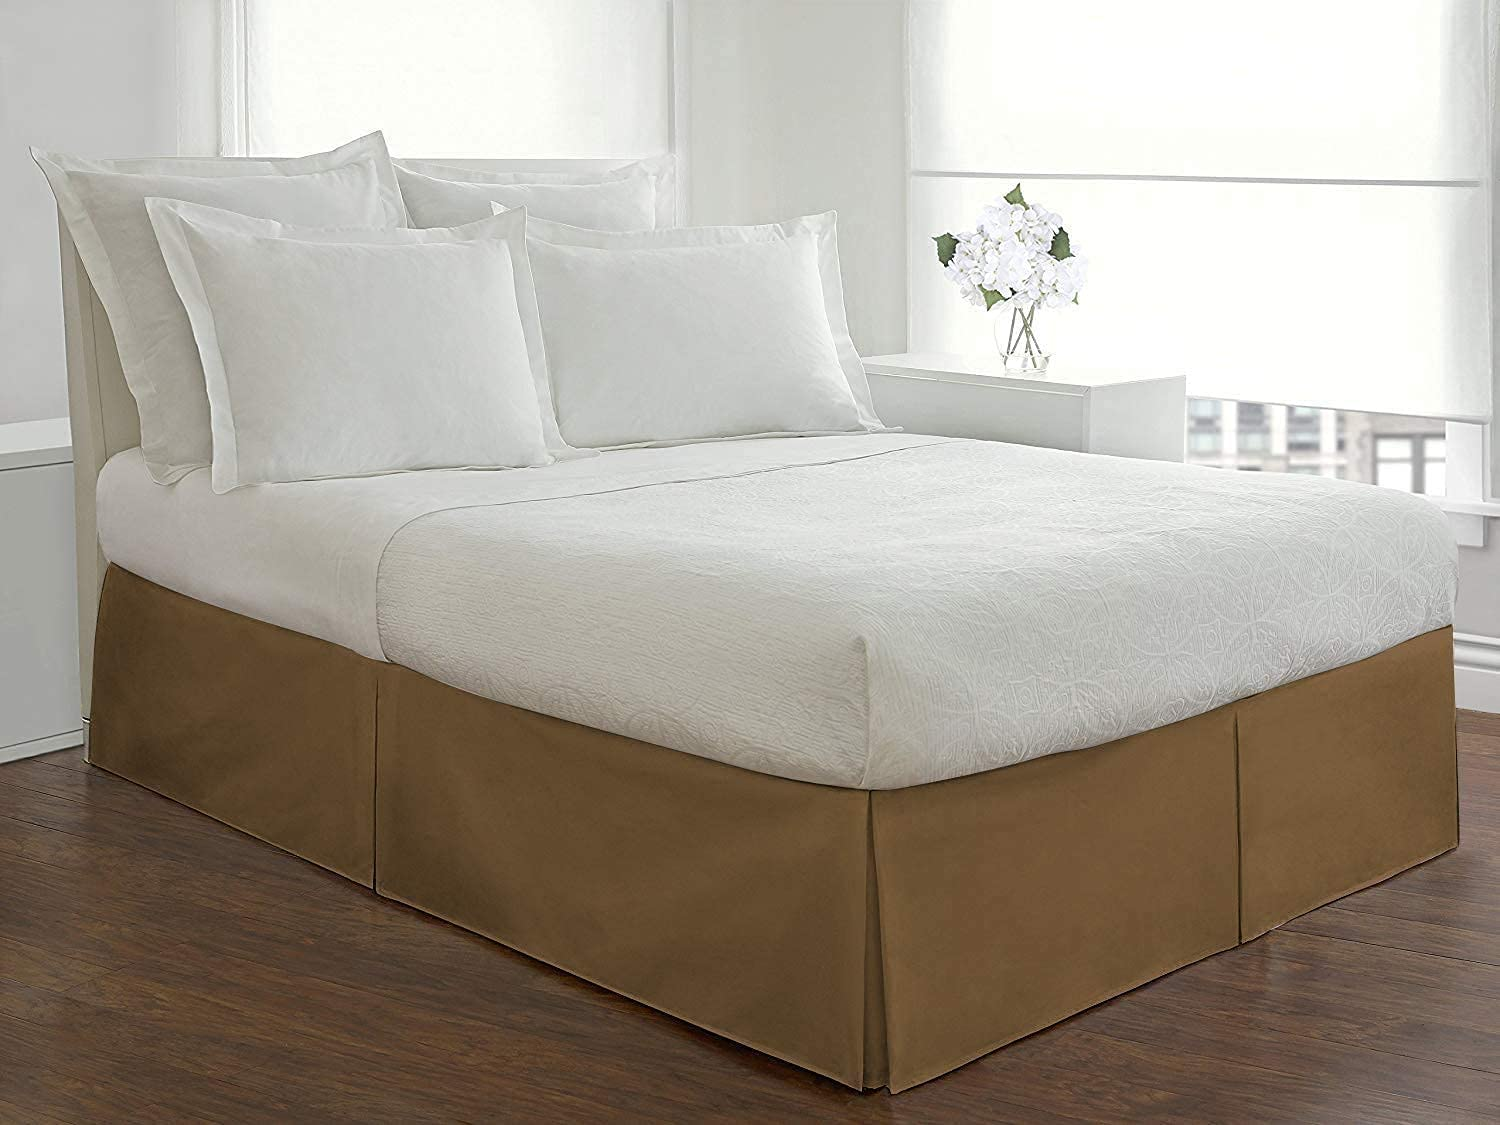 Max 42% OFF Hotel Luxury Bed lowest price Skirt Box Cotton Pleated-100% with Egyptian 800